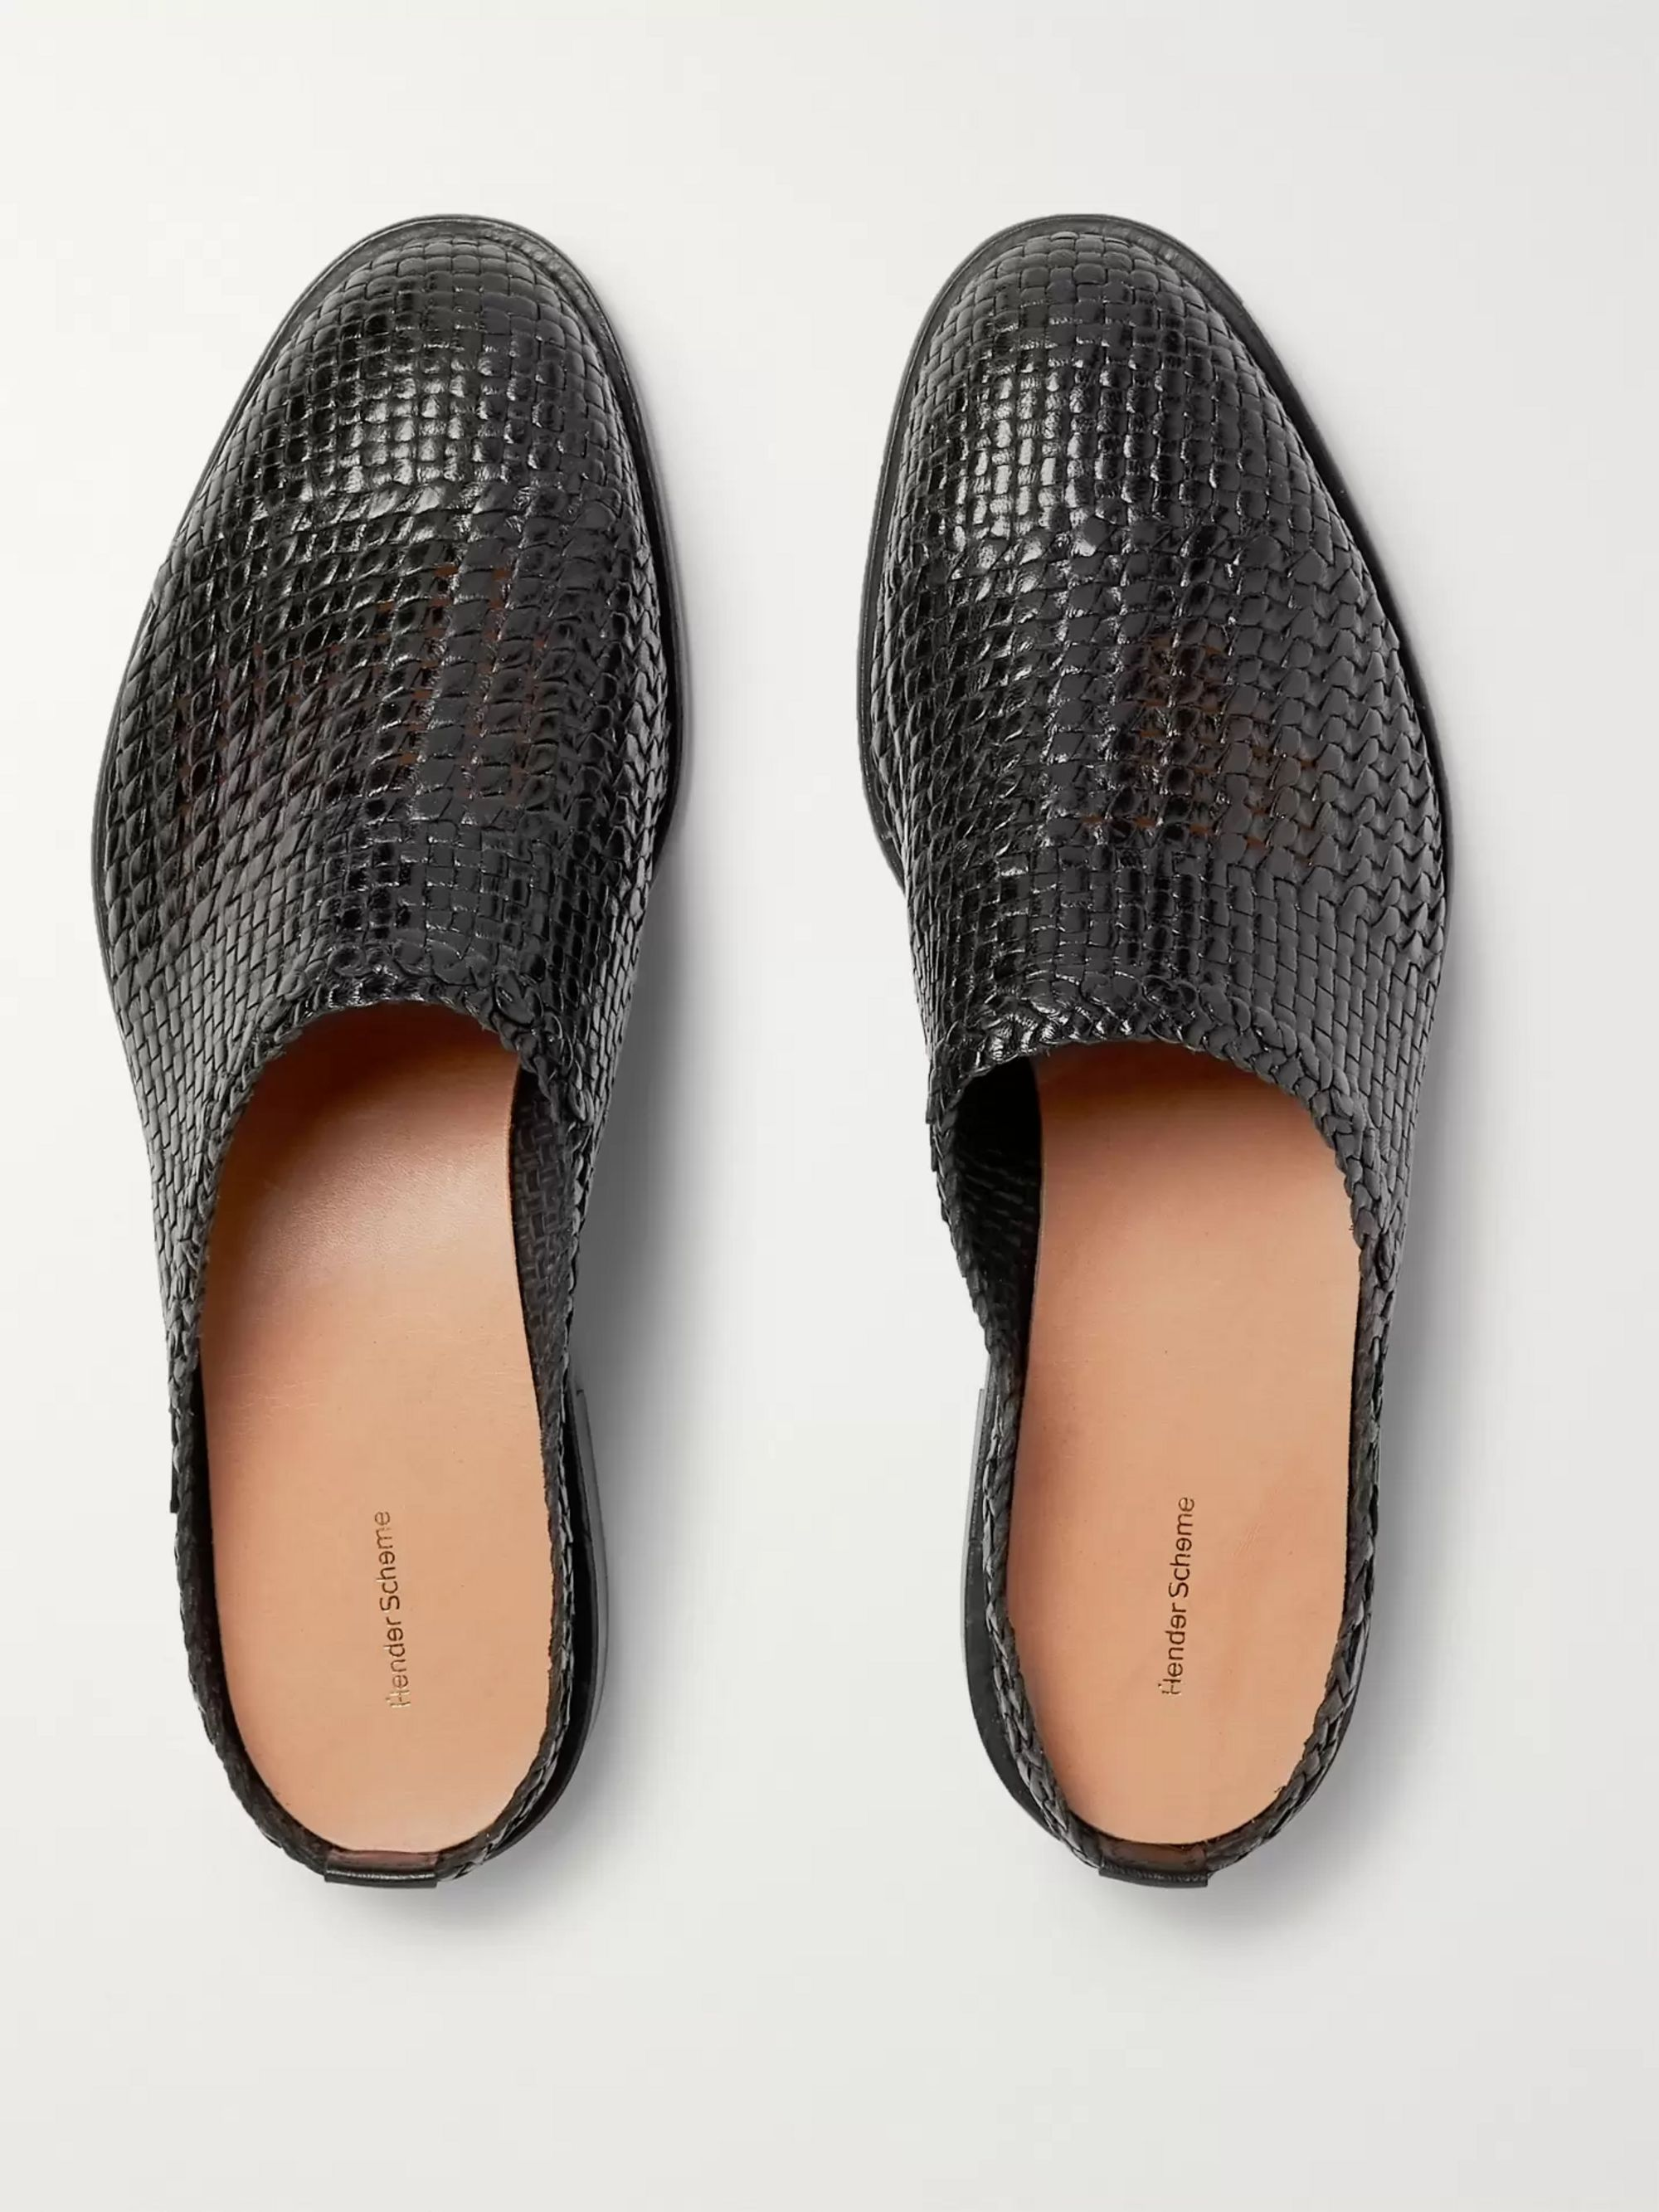 Hender Scheme Woven Leather Loafers